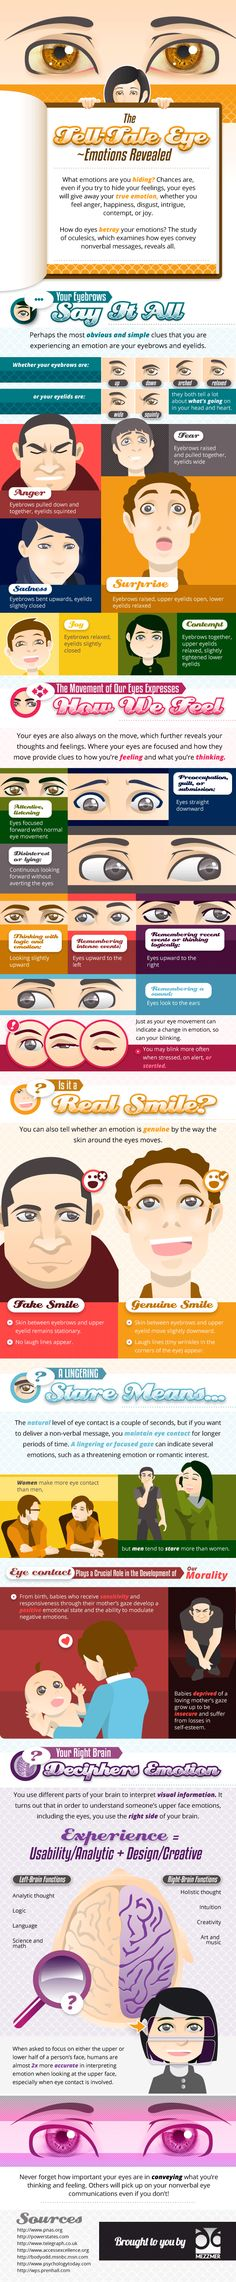 The Tell -Tale Eye ~ Emotions Revealed   #infographic #Emotions #Expressions